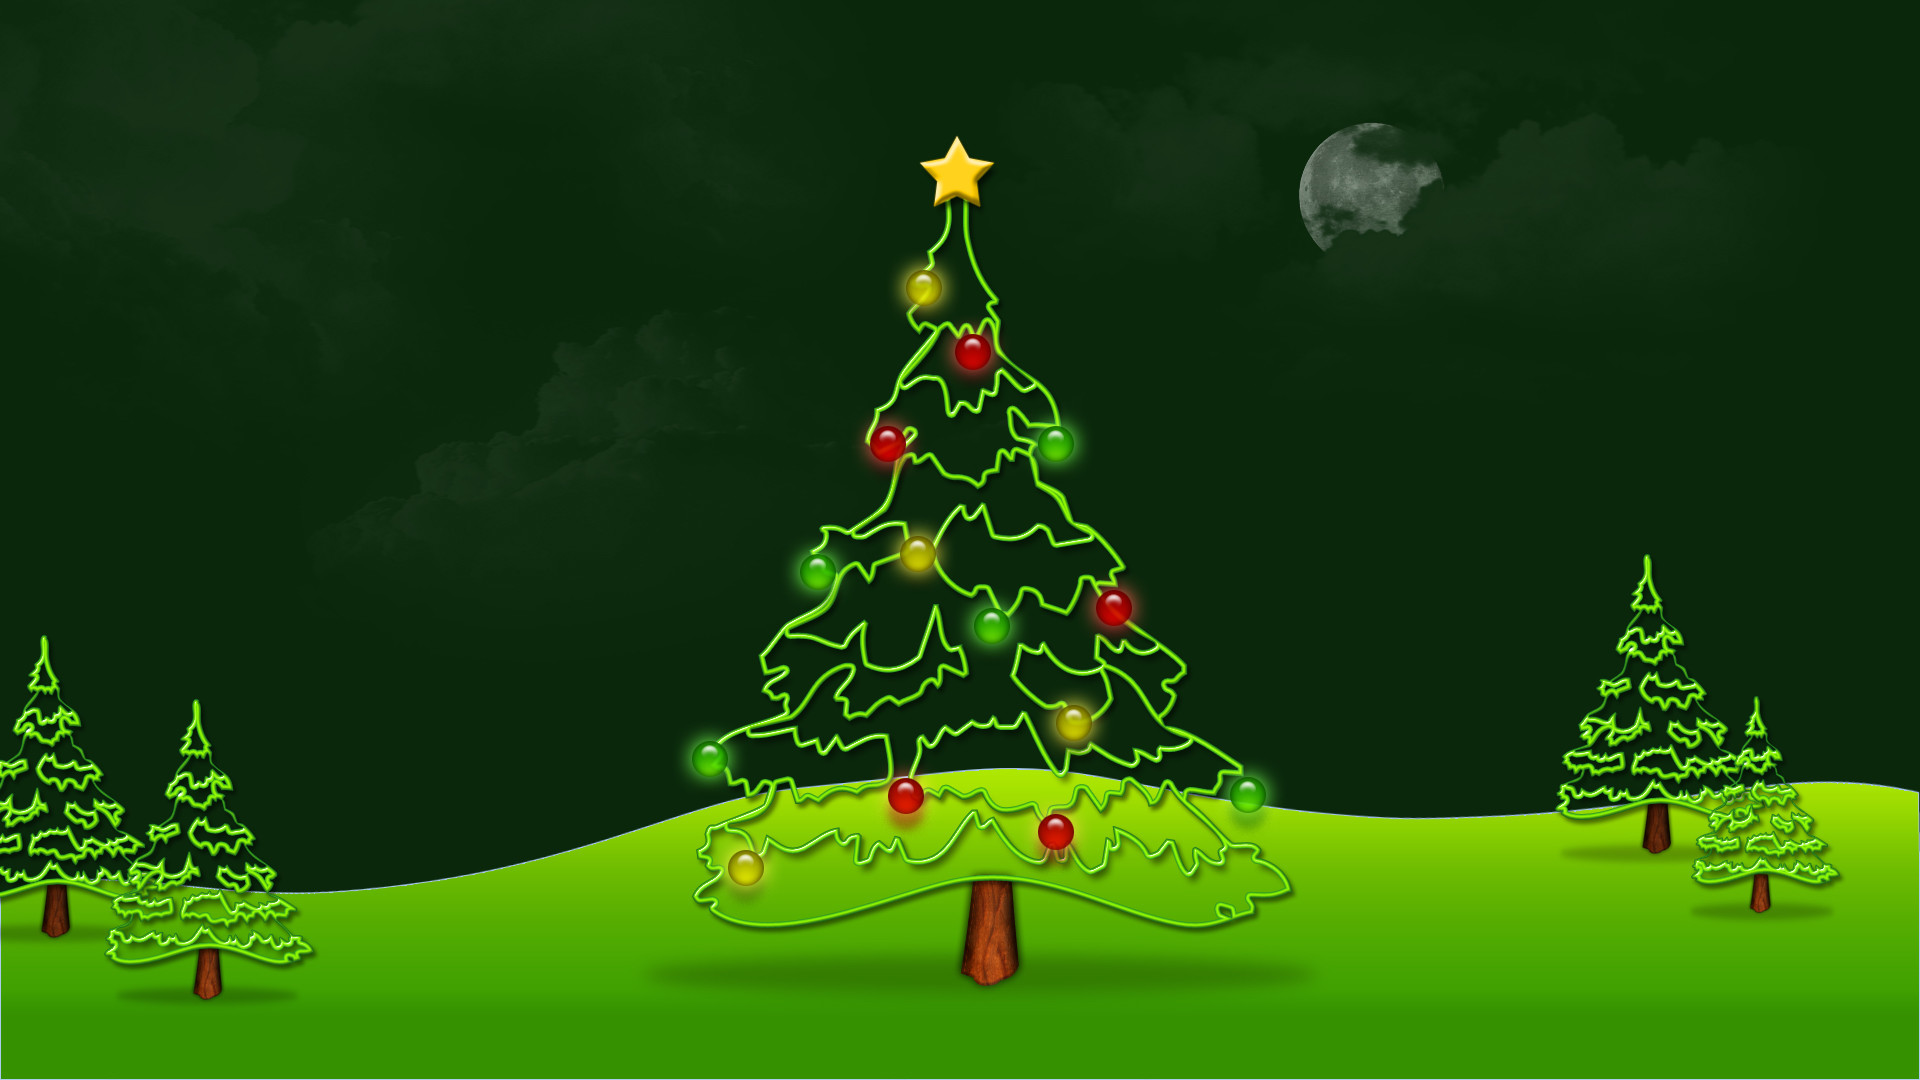 Res: 1920x1080, Animated Christmas Wallpapers